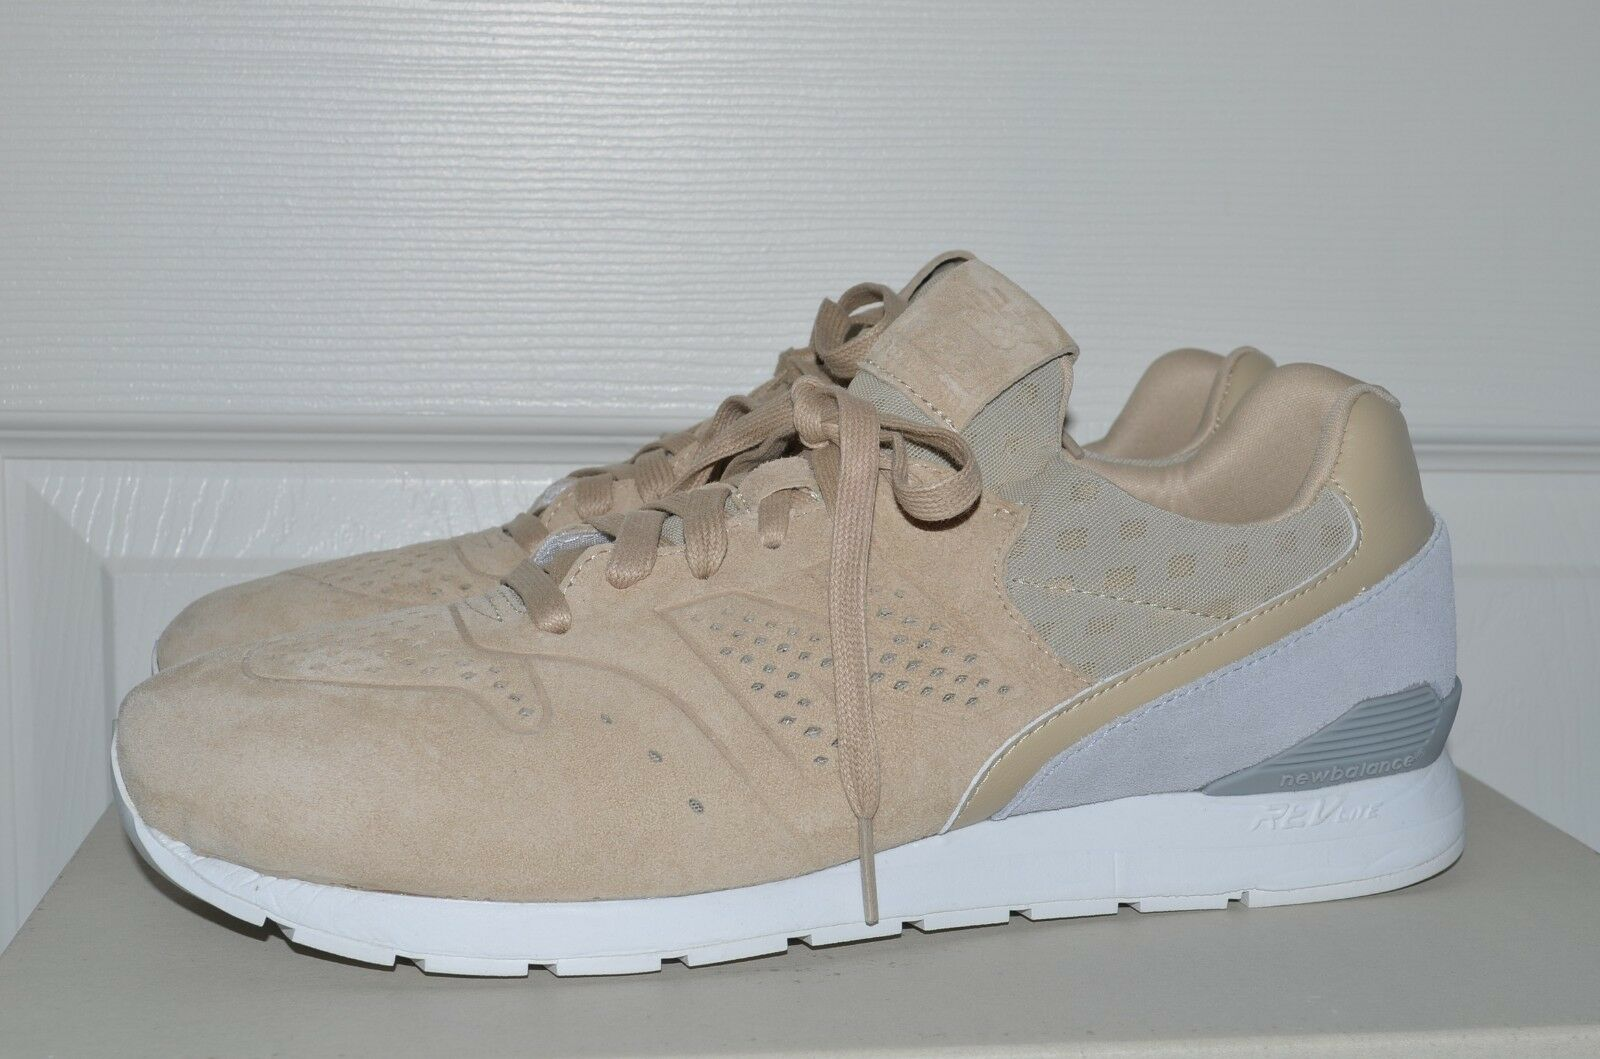 New Balance Men 696 Re-Engineered MRL696DJ tan sand light grey MRL696DJ Size 11